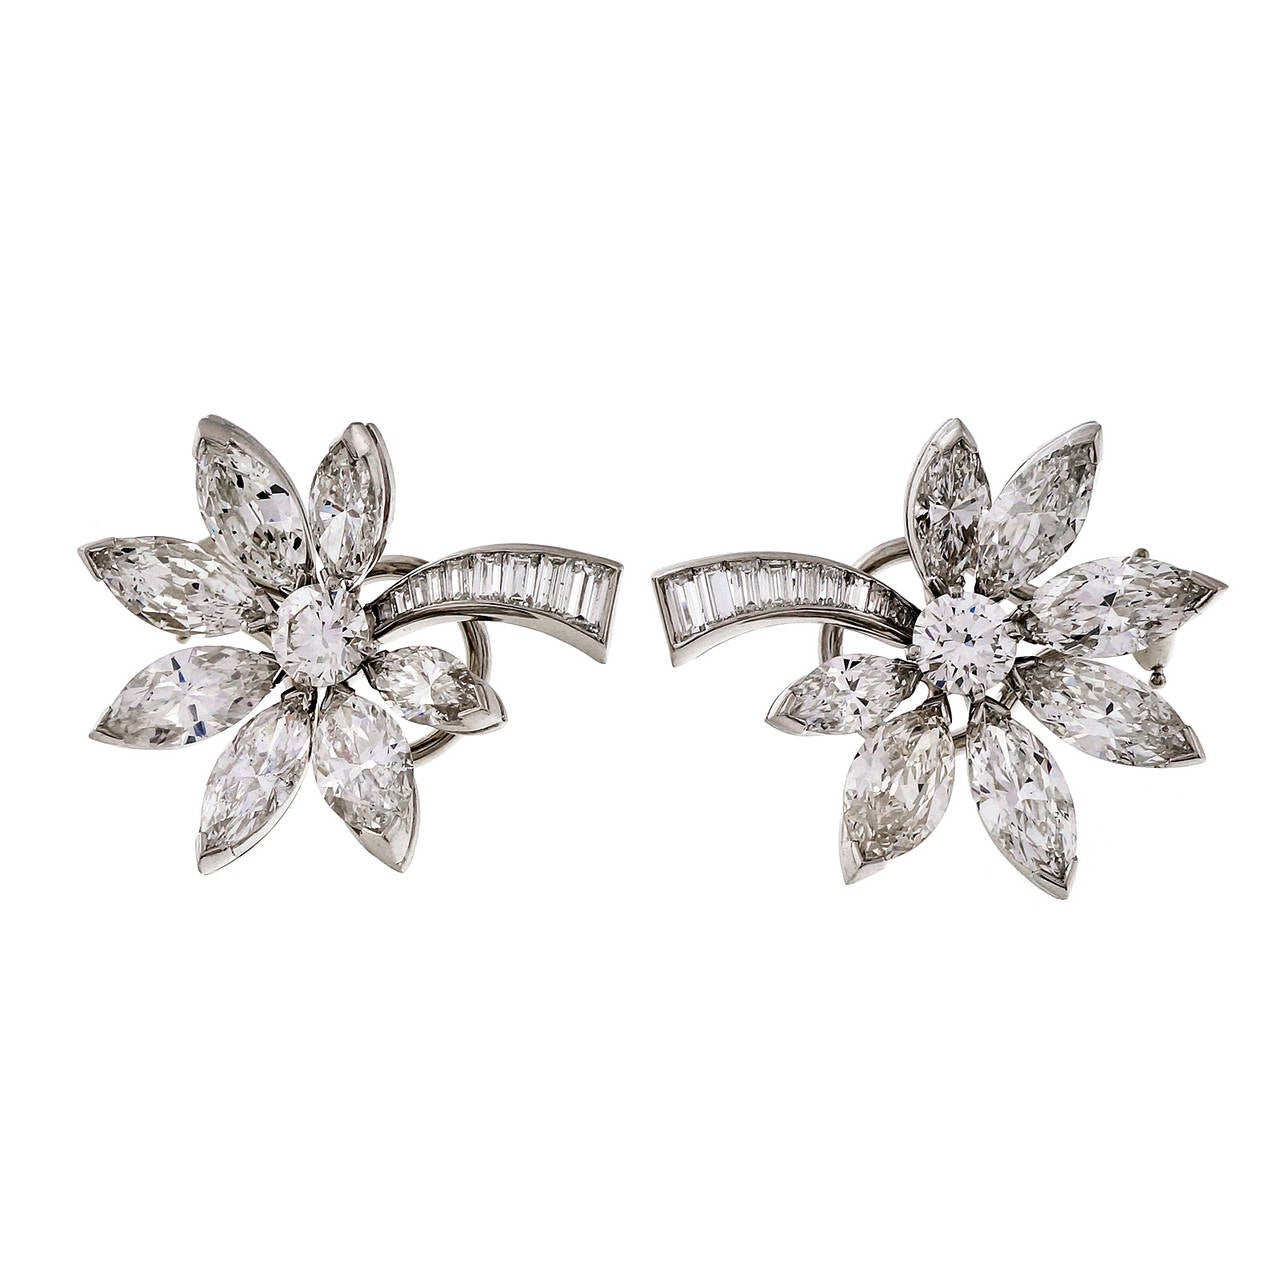 1950s Diamond Platinum Fireworks or Comet Earrings In Good Condition For Sale In Stamford, CT